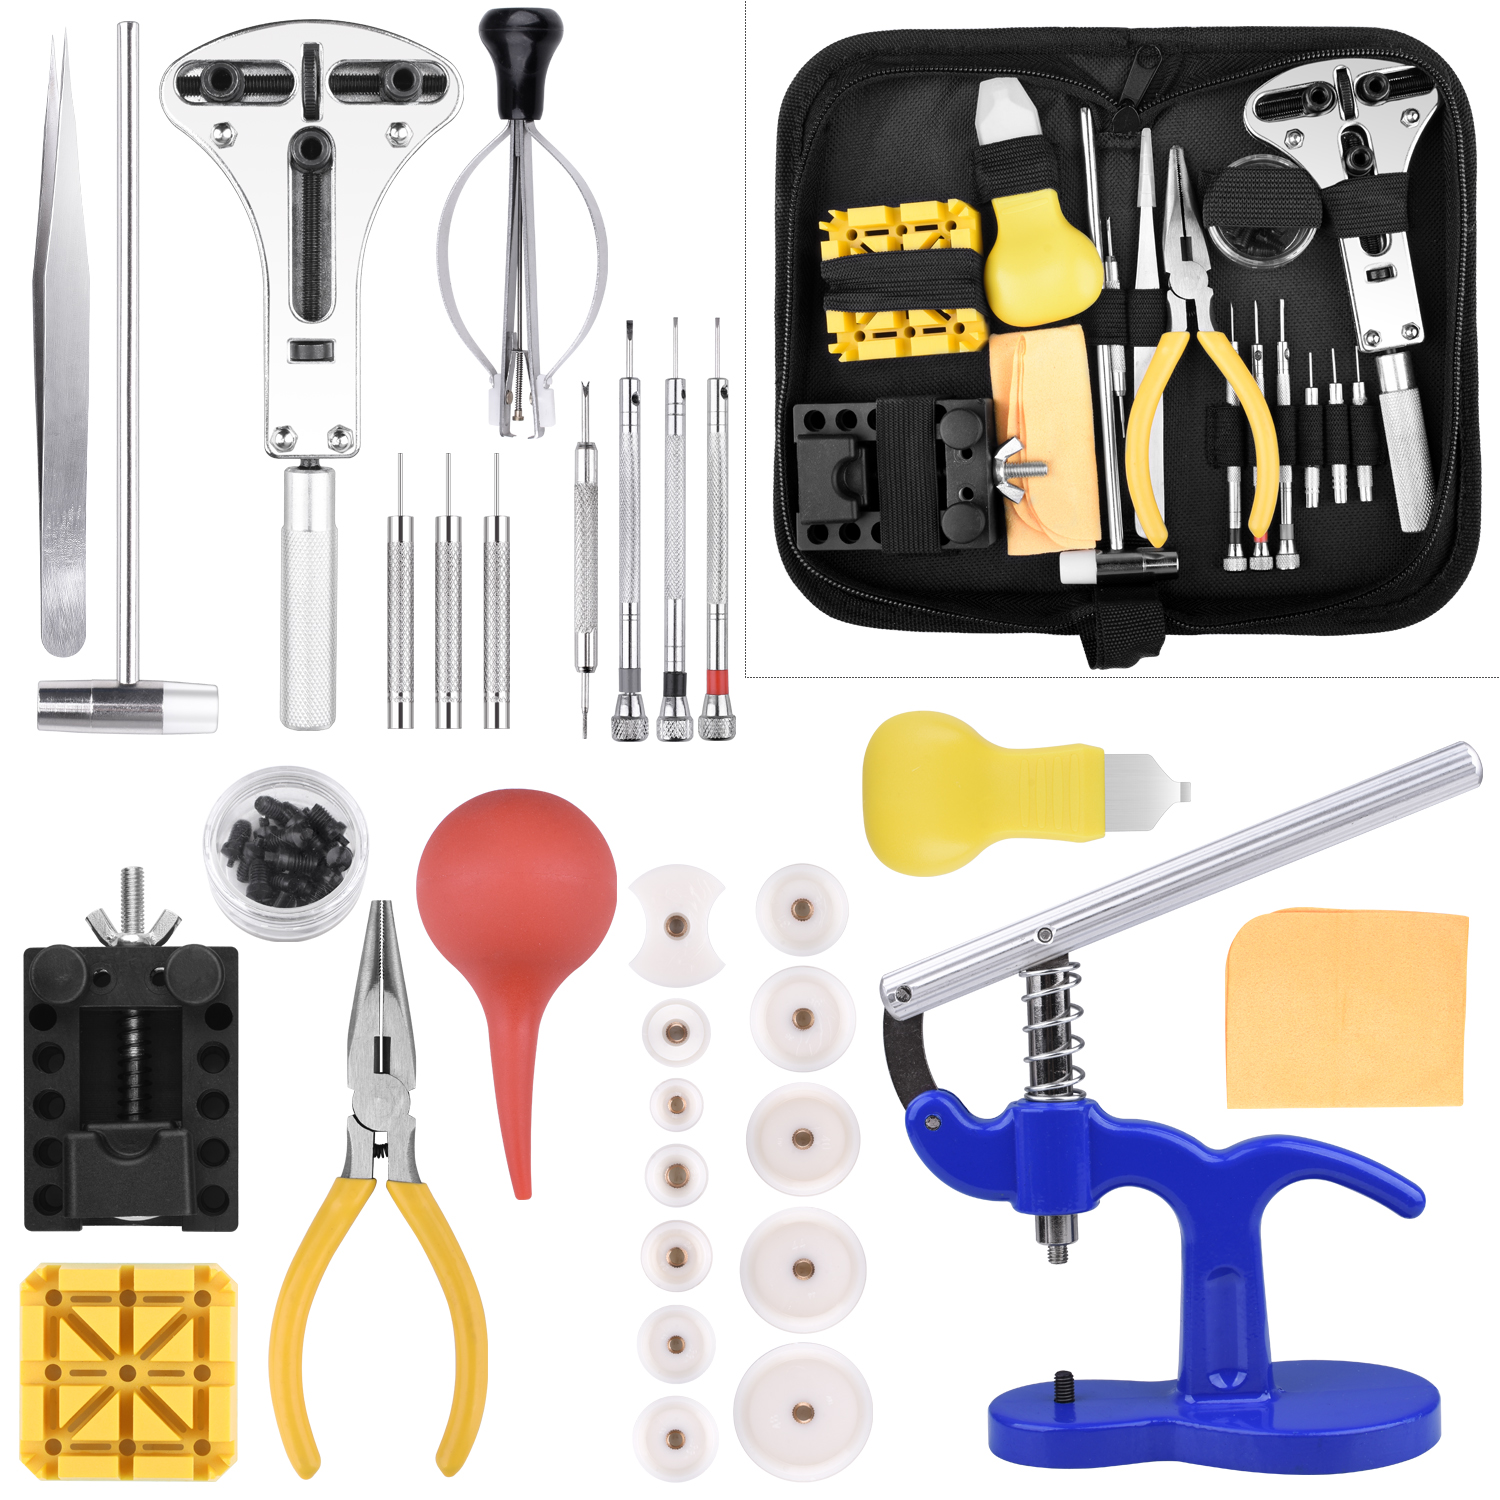 Watch Repair Tool Kit, Longruner Professional Portable Watch